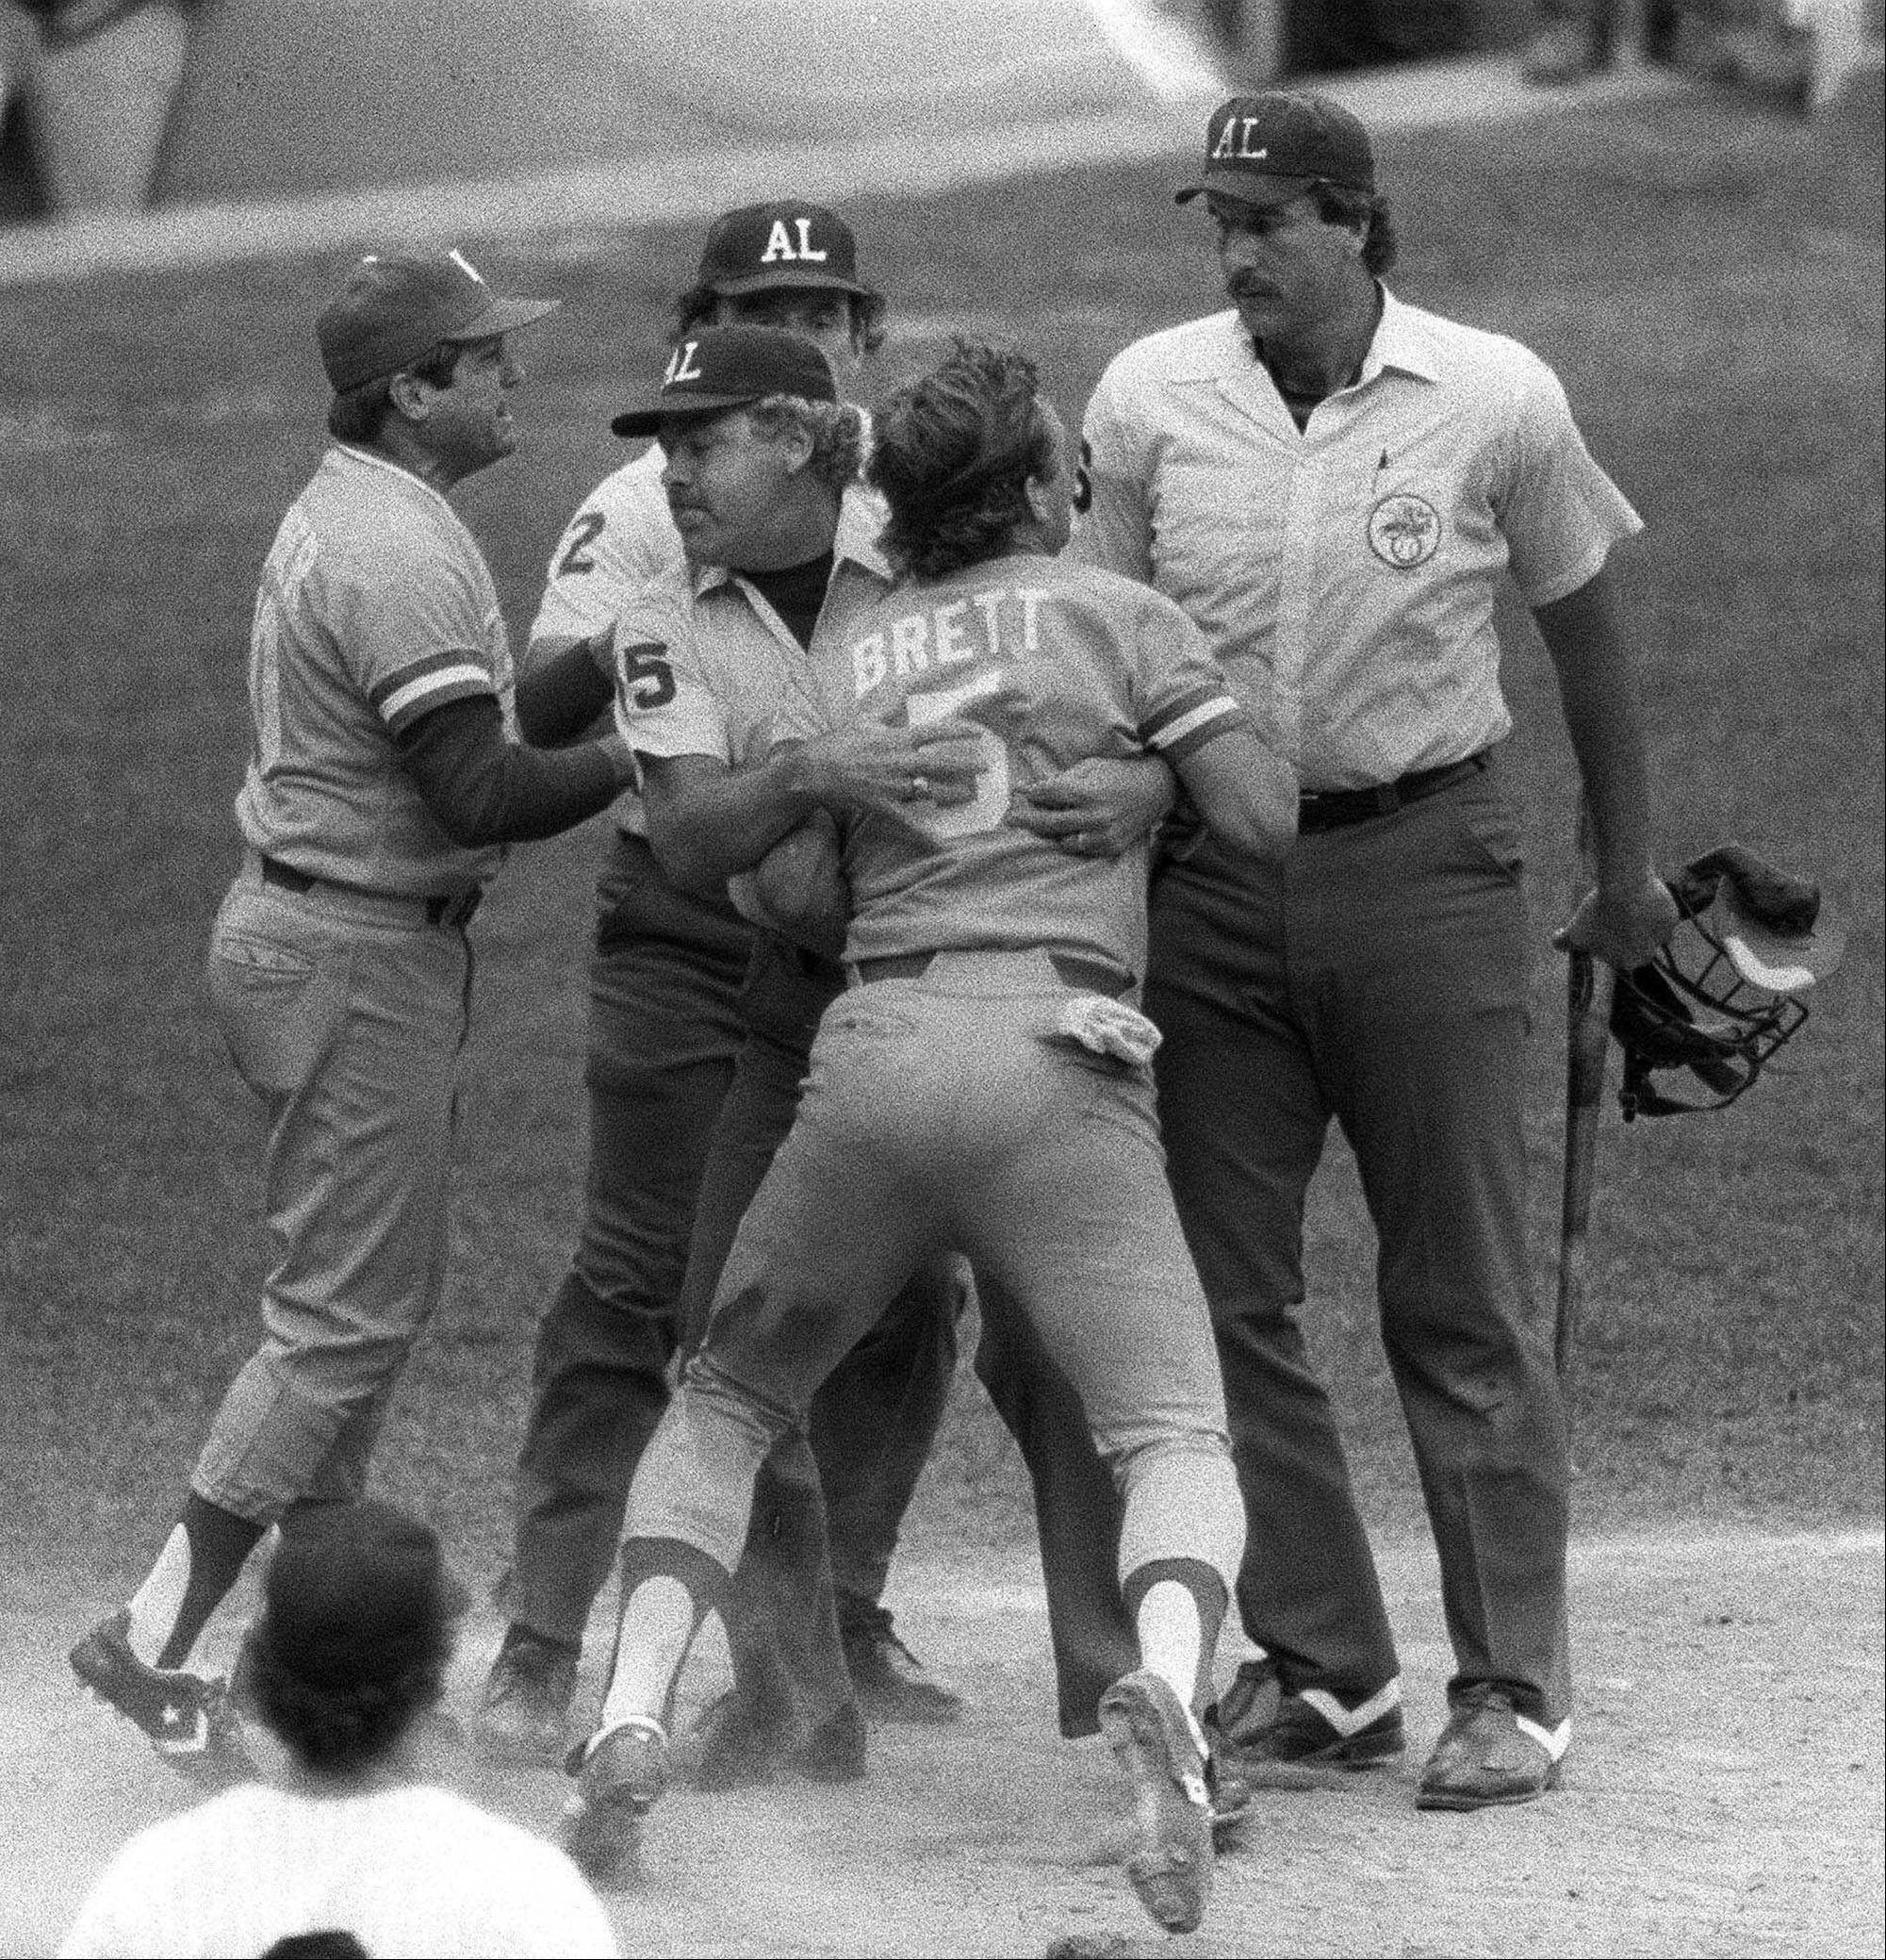 The Royals' George Brett, center, is restrained by umpire Joe Brinkman after his bat, held by umpire Tim McClelland, right, was ruled illegal because of the amount of pine tar on the handle. Brett had hit a home run that would have won the game against the Yankees but was instead called out.